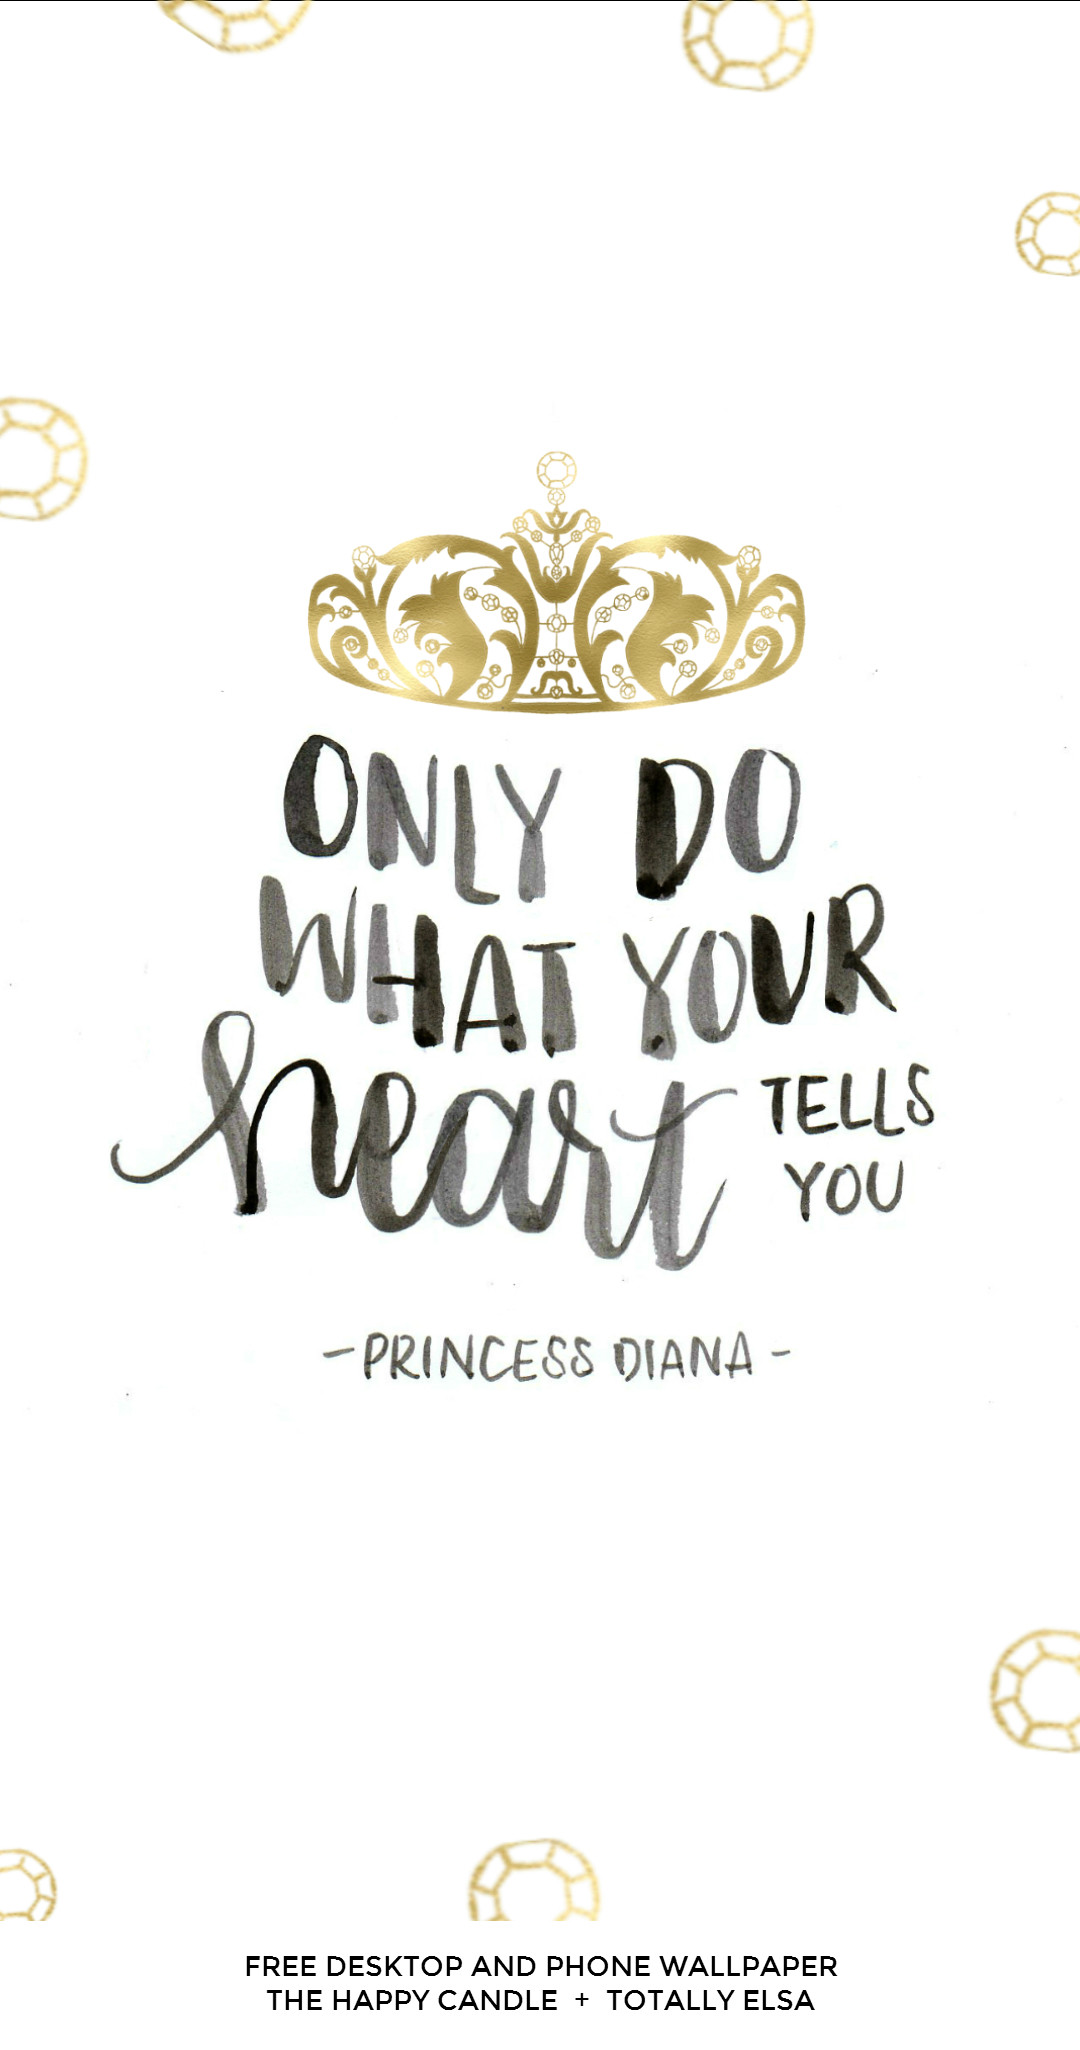 A free desktop and phone wallpaper with a quote from Princess Diana /  Created by The